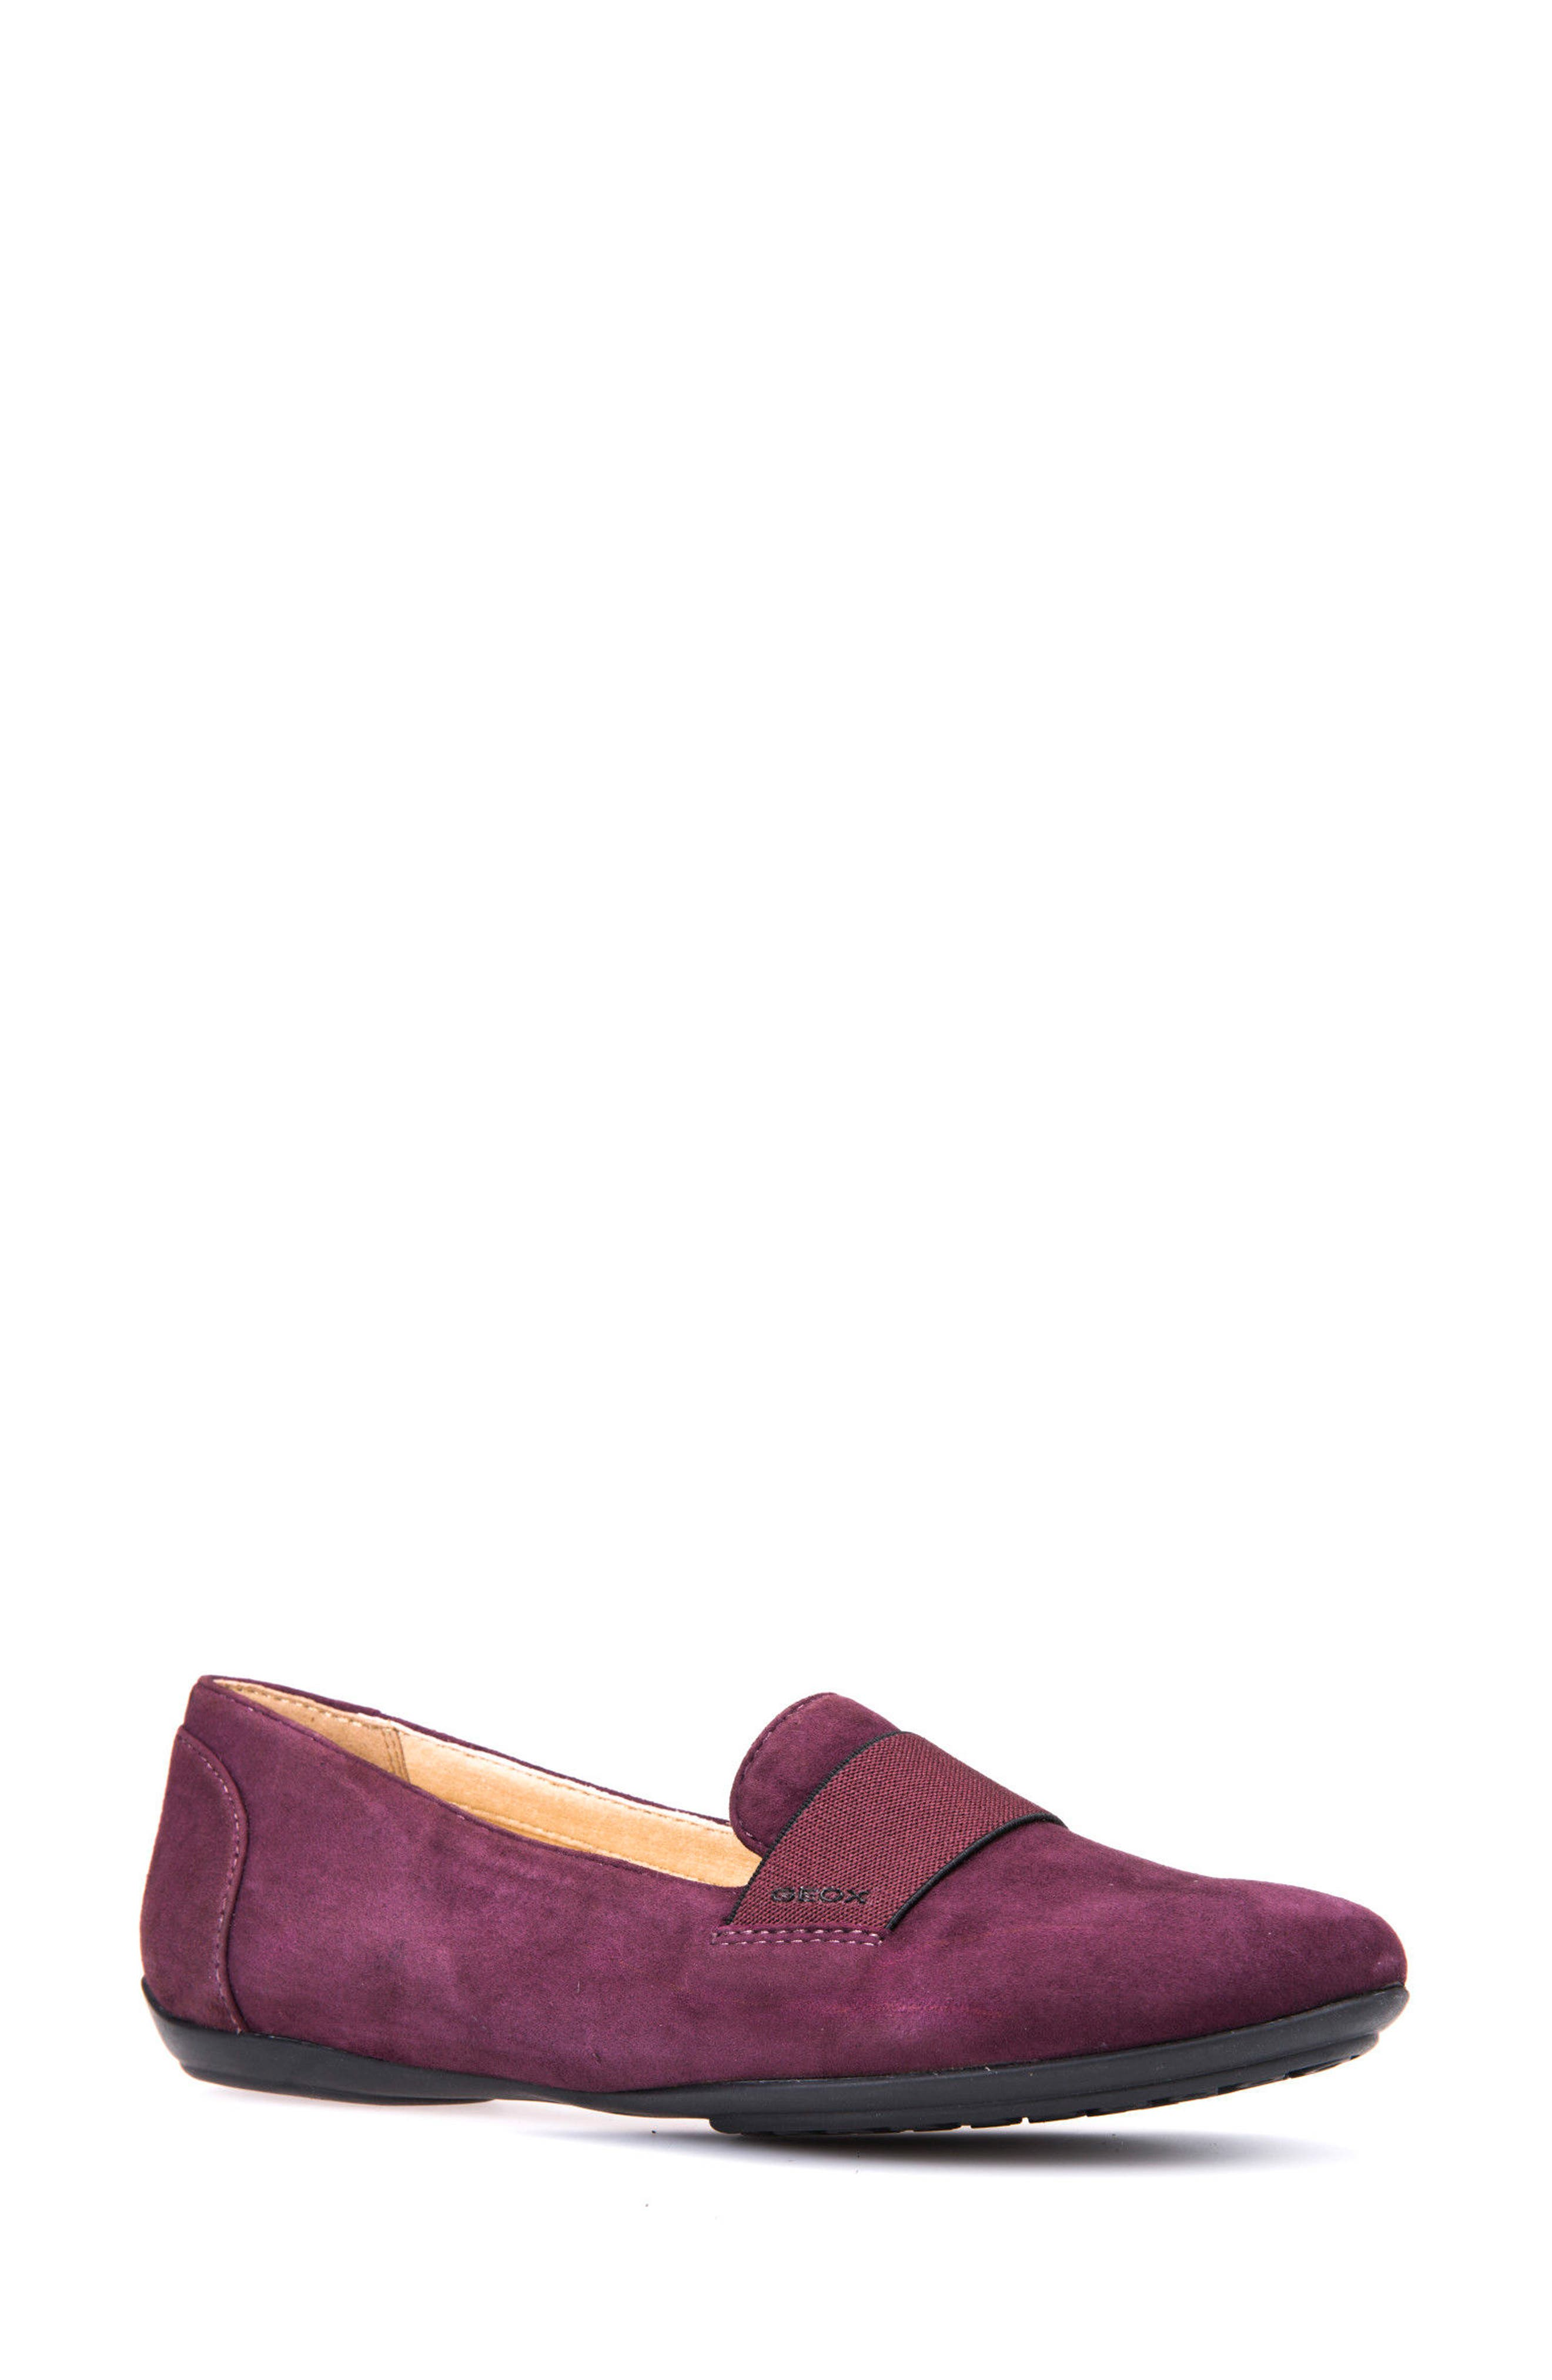 Charlene 17 Flat,                         Main,                         color, Prune Leather